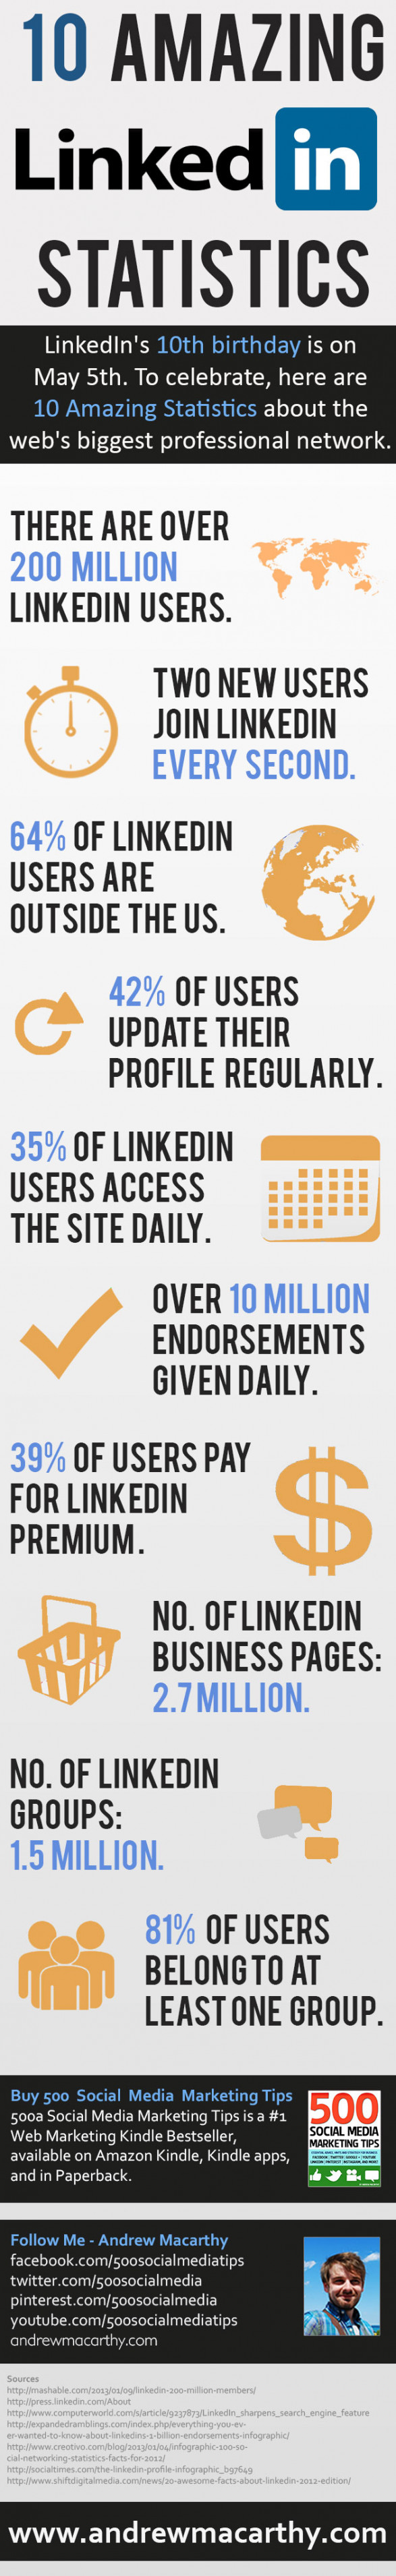 10 Amazing LinkedIn Statistics For 2013